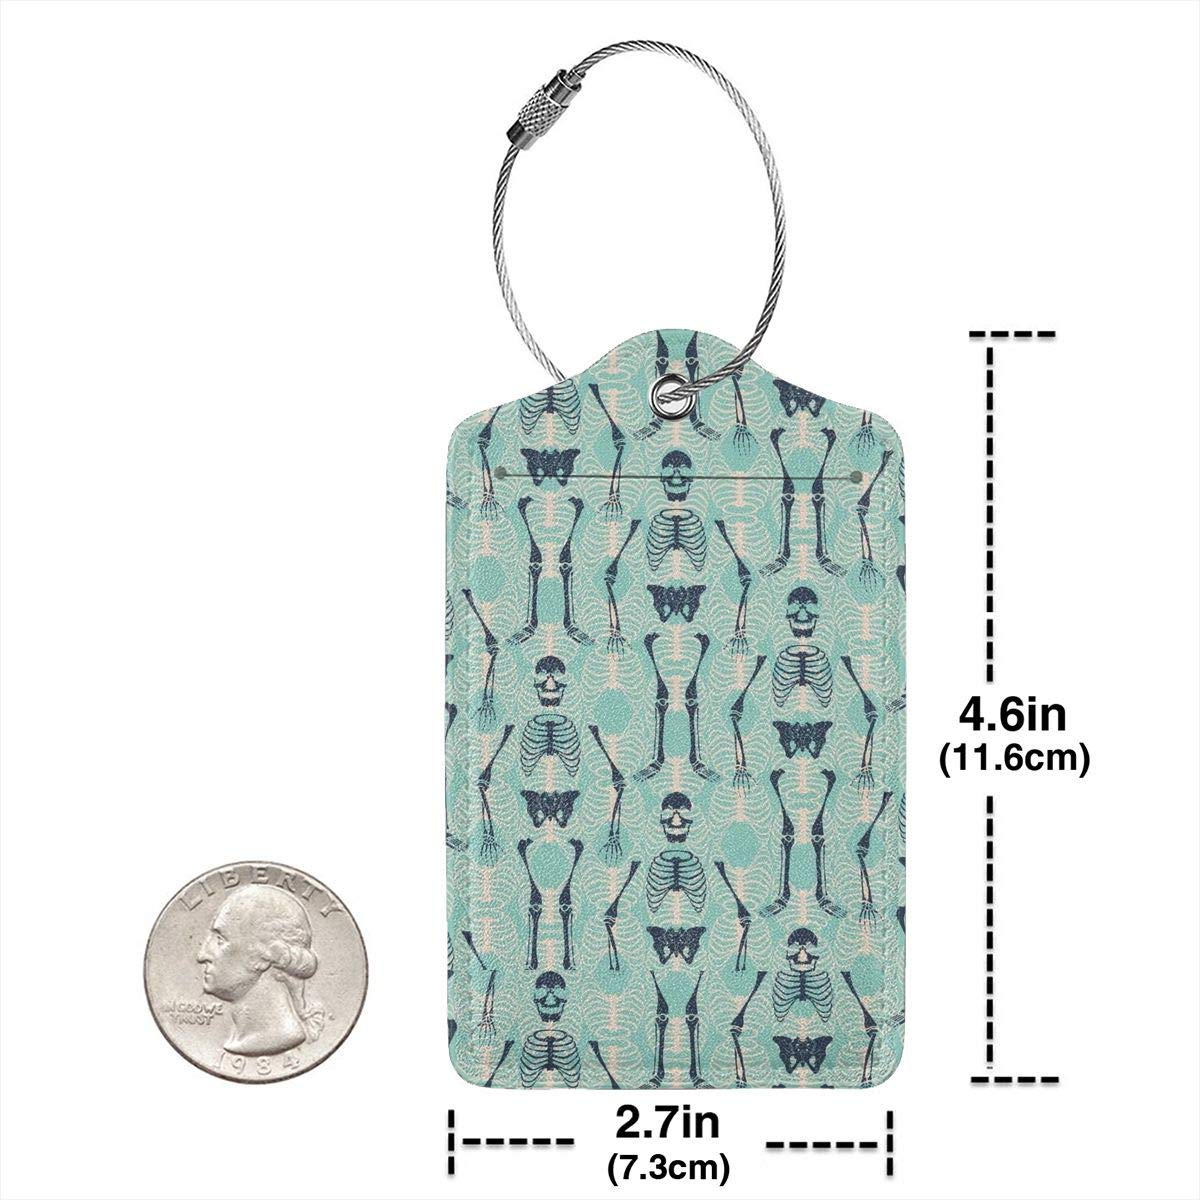 Key Tags for Travel Suitcase Handbags Gift Leather Luggage Tags Full Privacy Cover and Stainless Steel Loop 1 2 4 Pcs Set Halloween Skull Skeleton Mint Green 2.7 x 4.6 Blank Tag